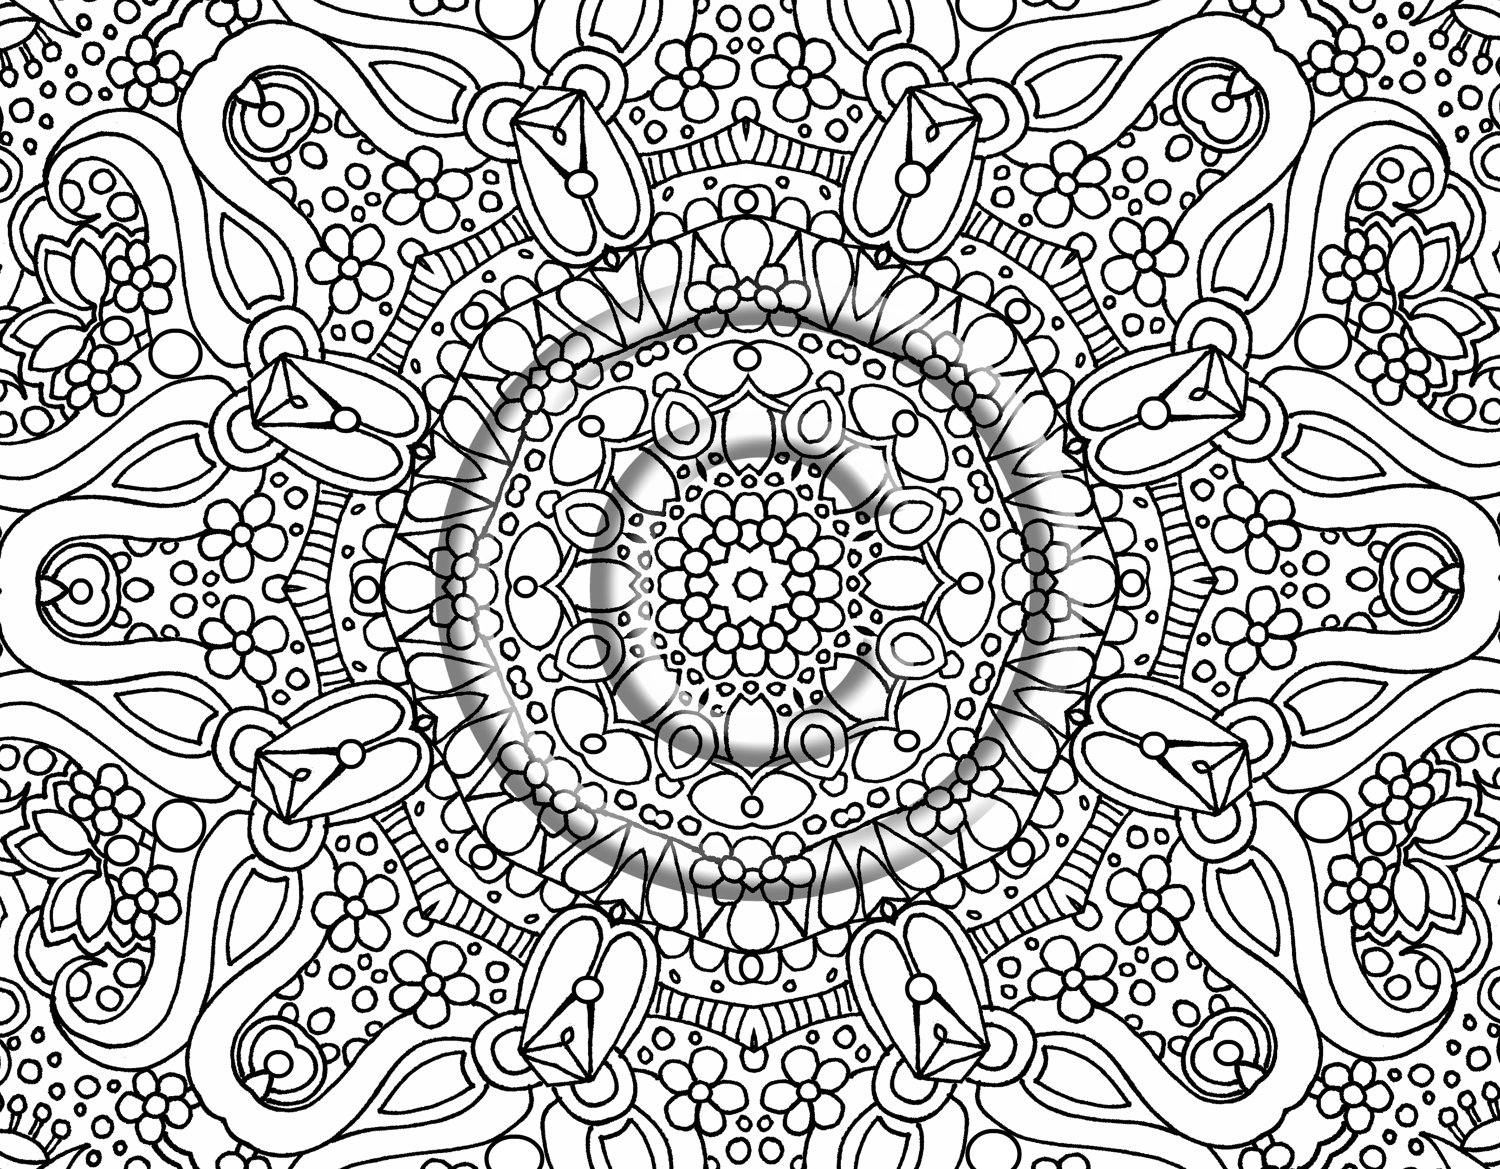 Very Hard Christmas Coloring Pages With Ultimate Difficult Montenegroplaze Me 2424 8